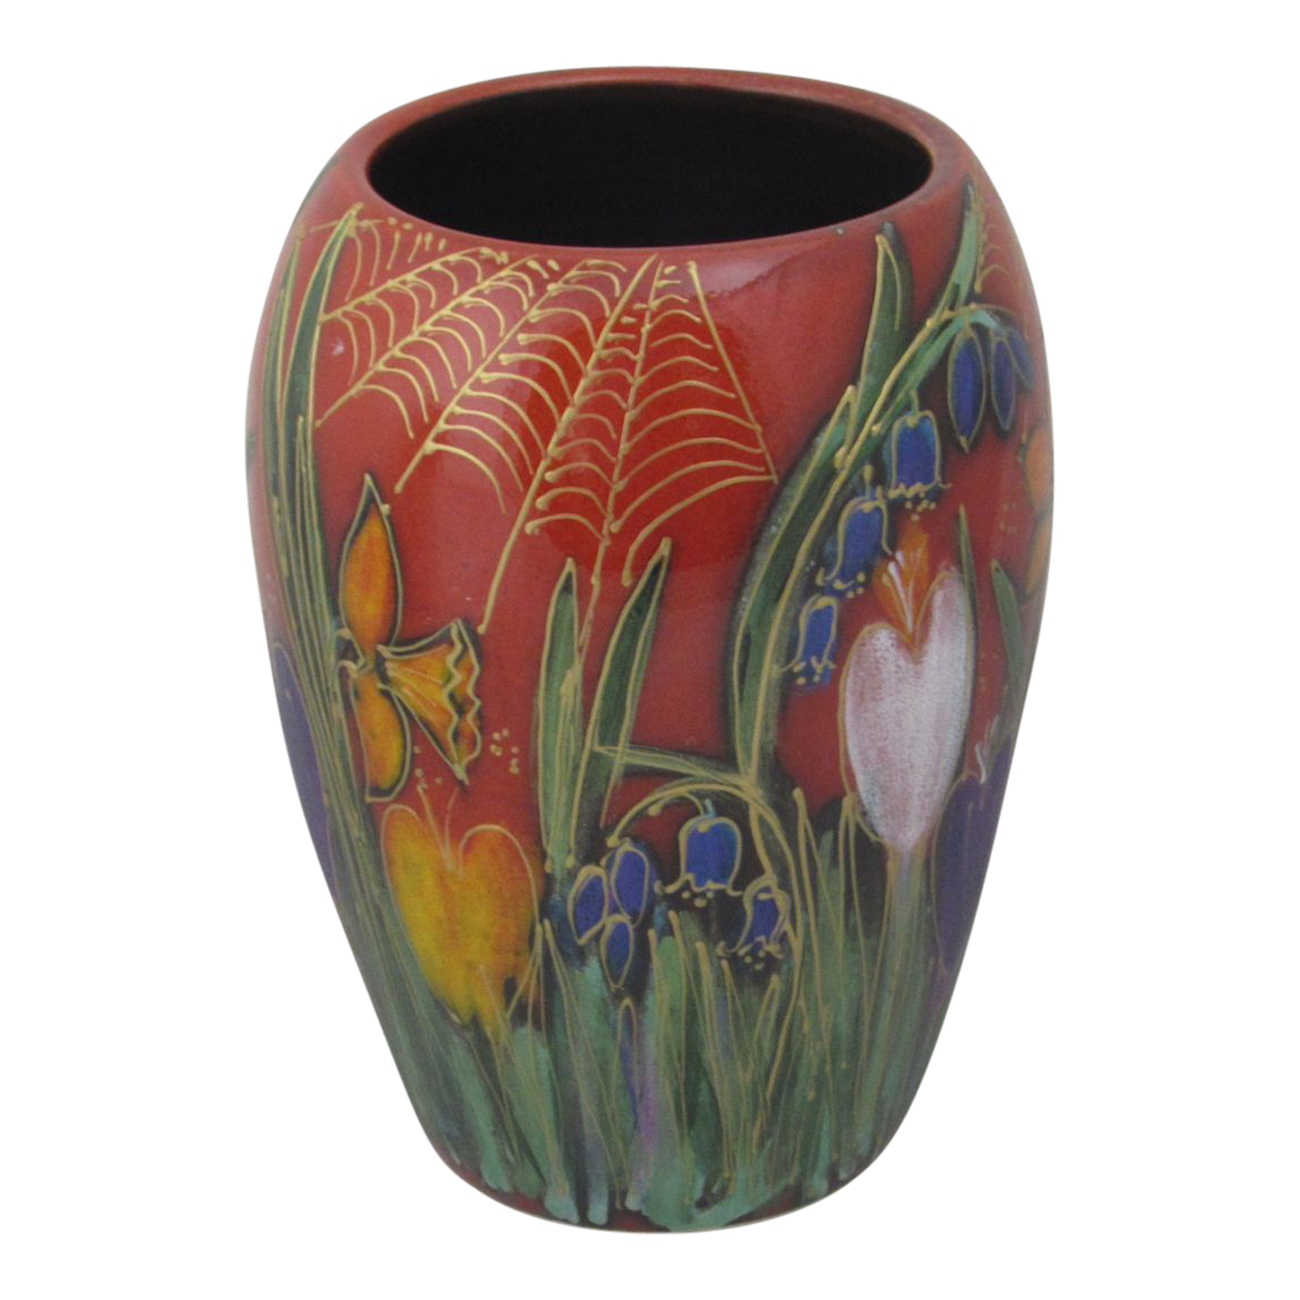 Great Easter Bunny Competition Win This Exclusive One Of A Kind Anita Harris Spring Vase